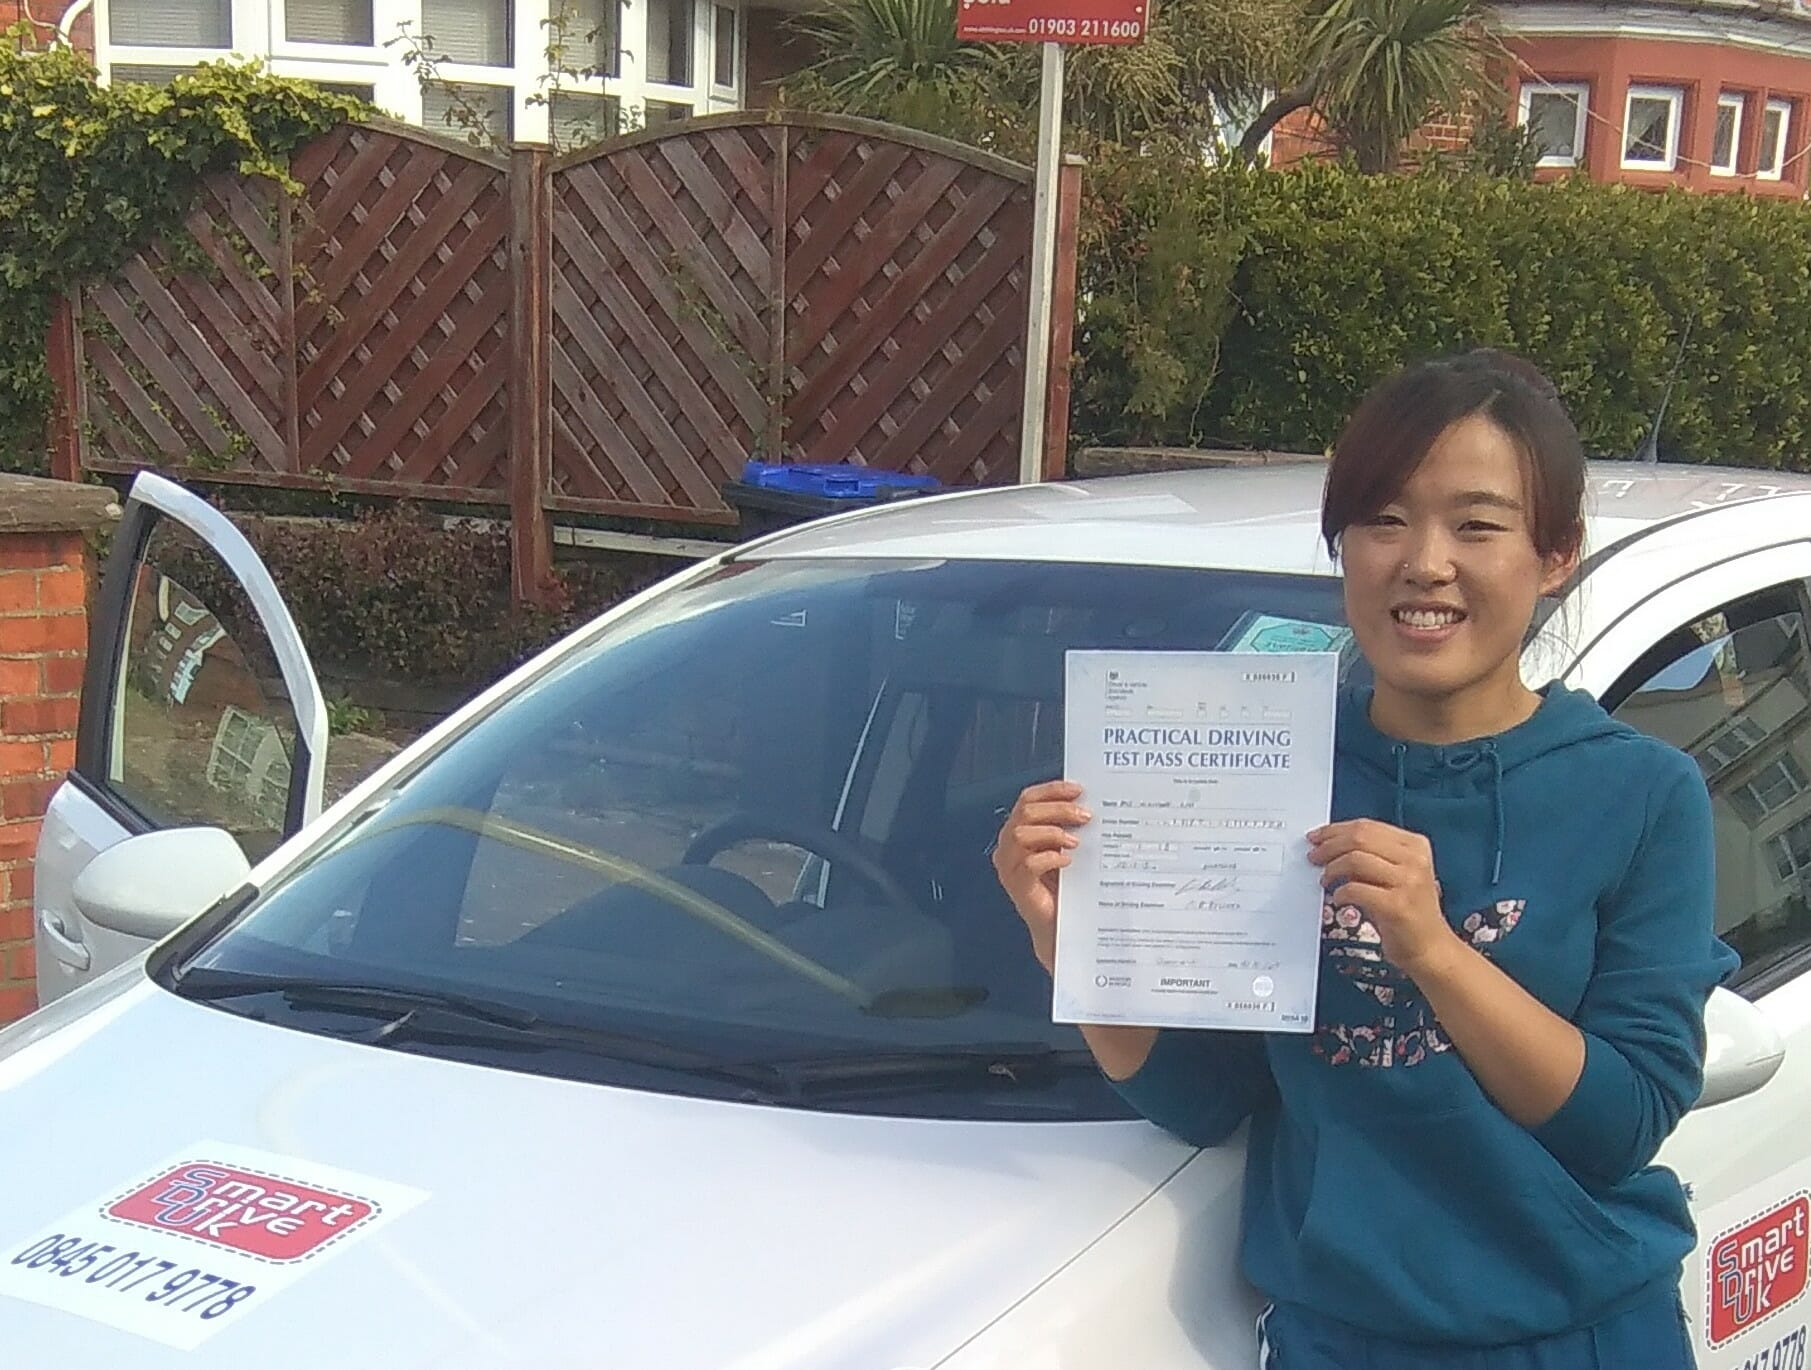 Well done to Xiaoming from Worthing